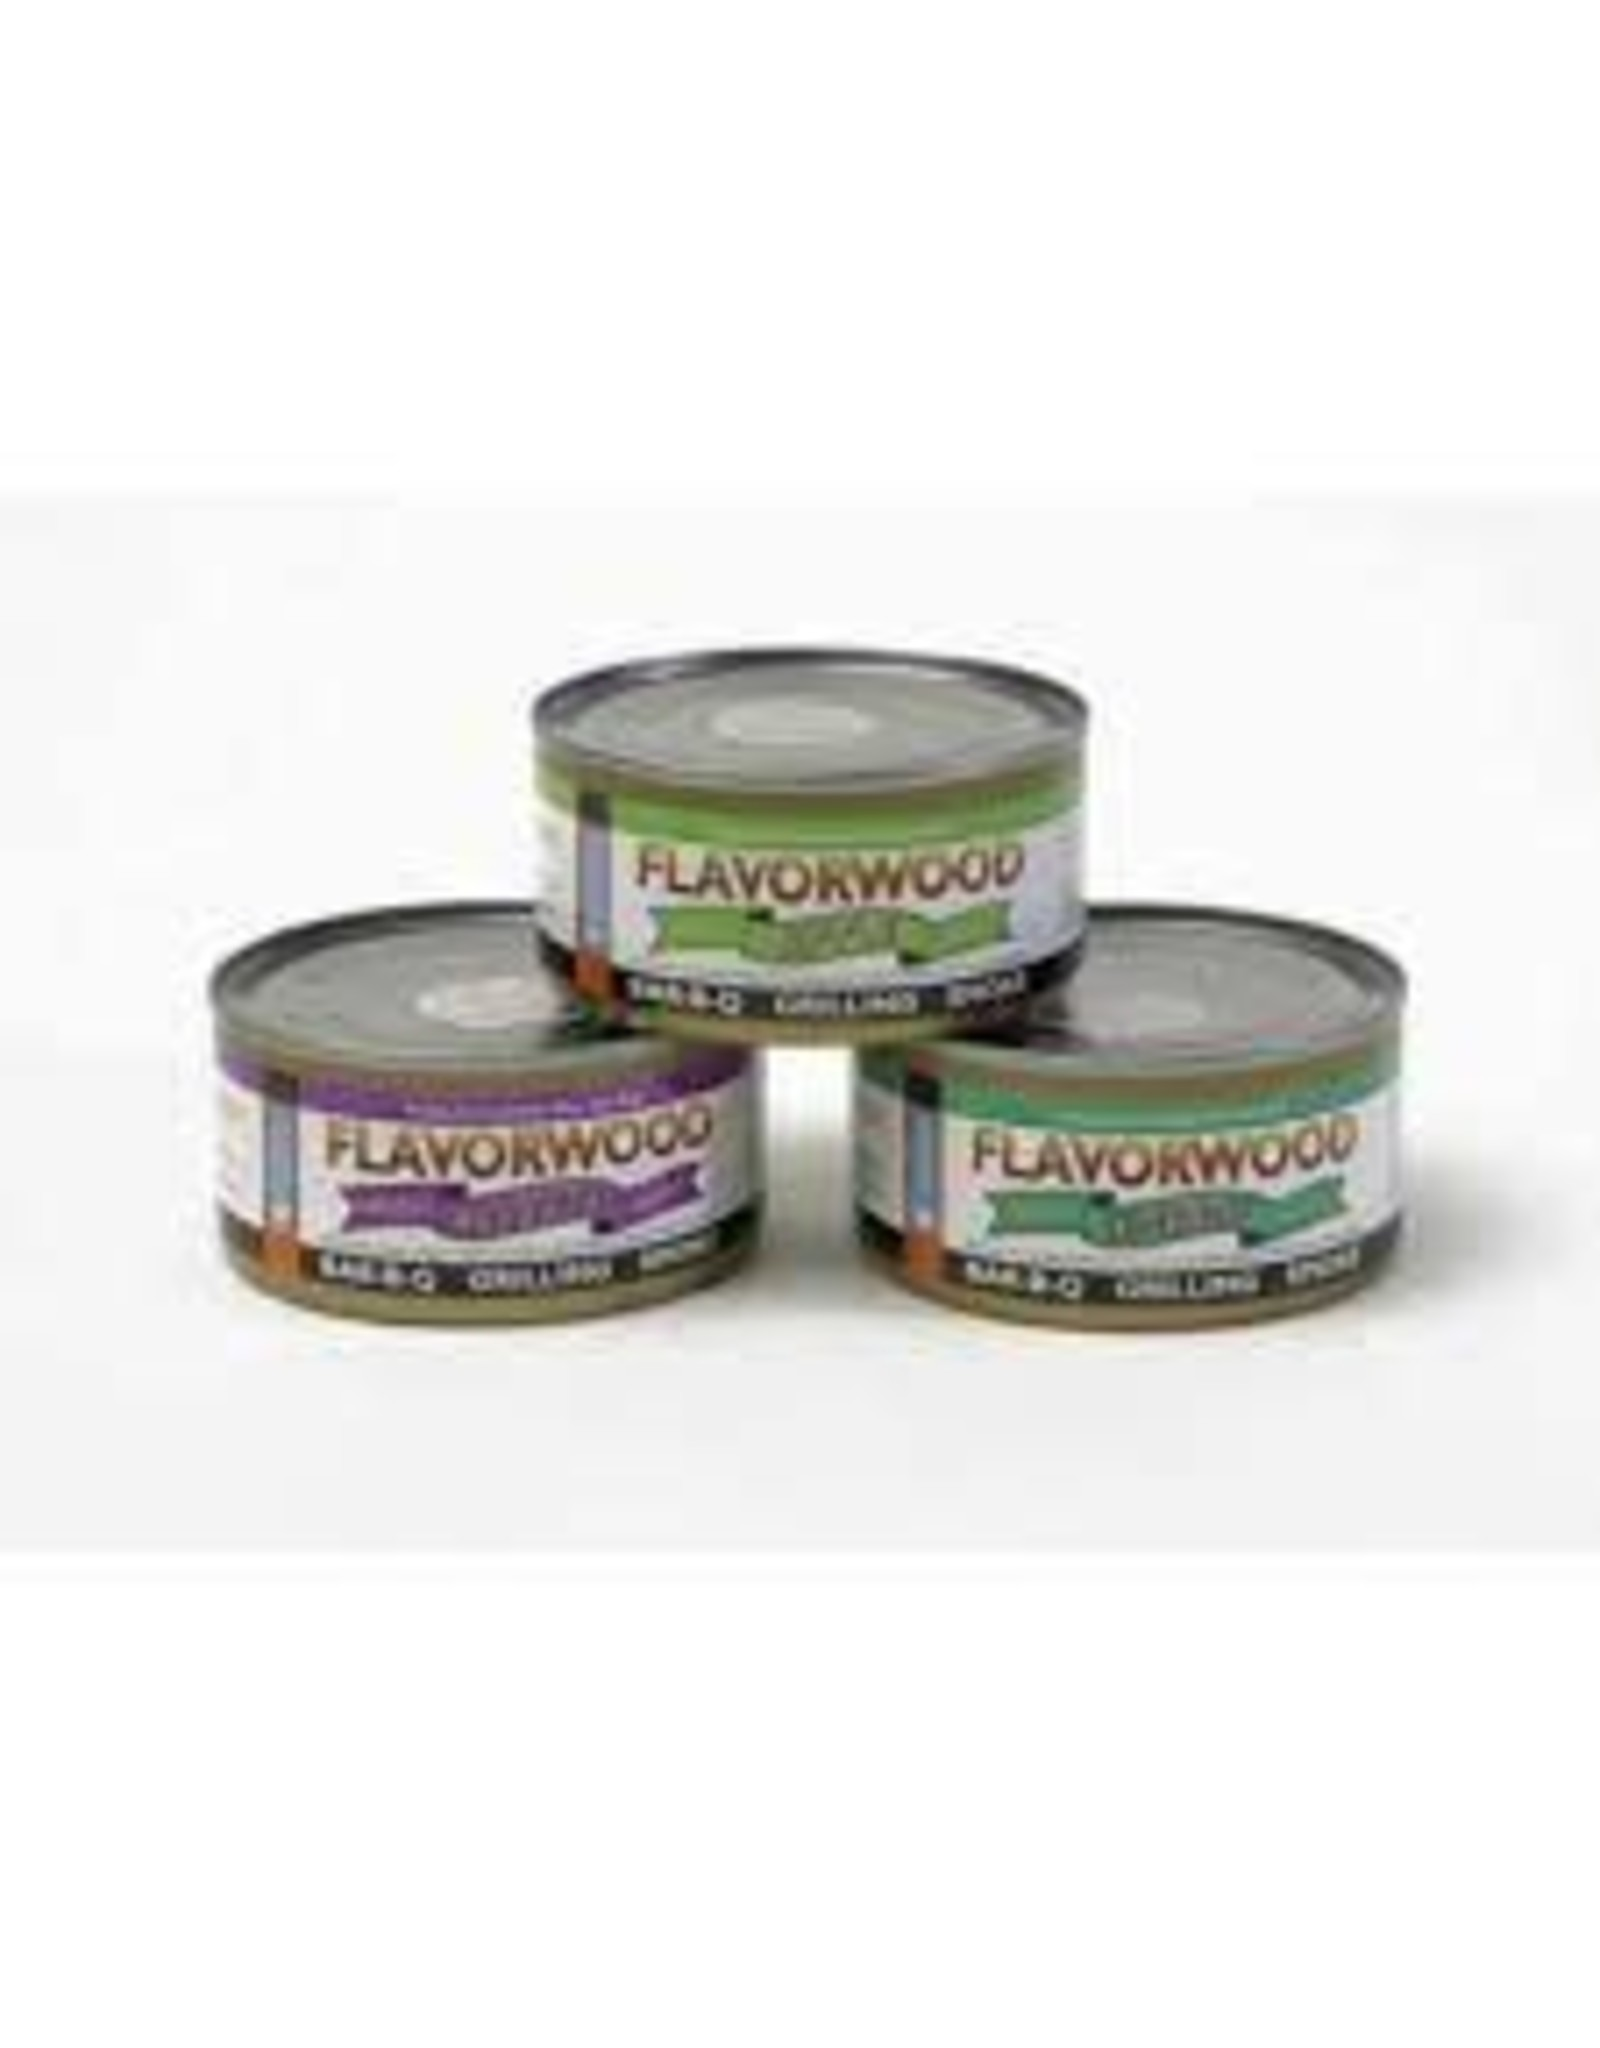 Cameron CAMERON-Flavorwood 3 Assorted - 1 Apple, 1 Hic, 1 Mes